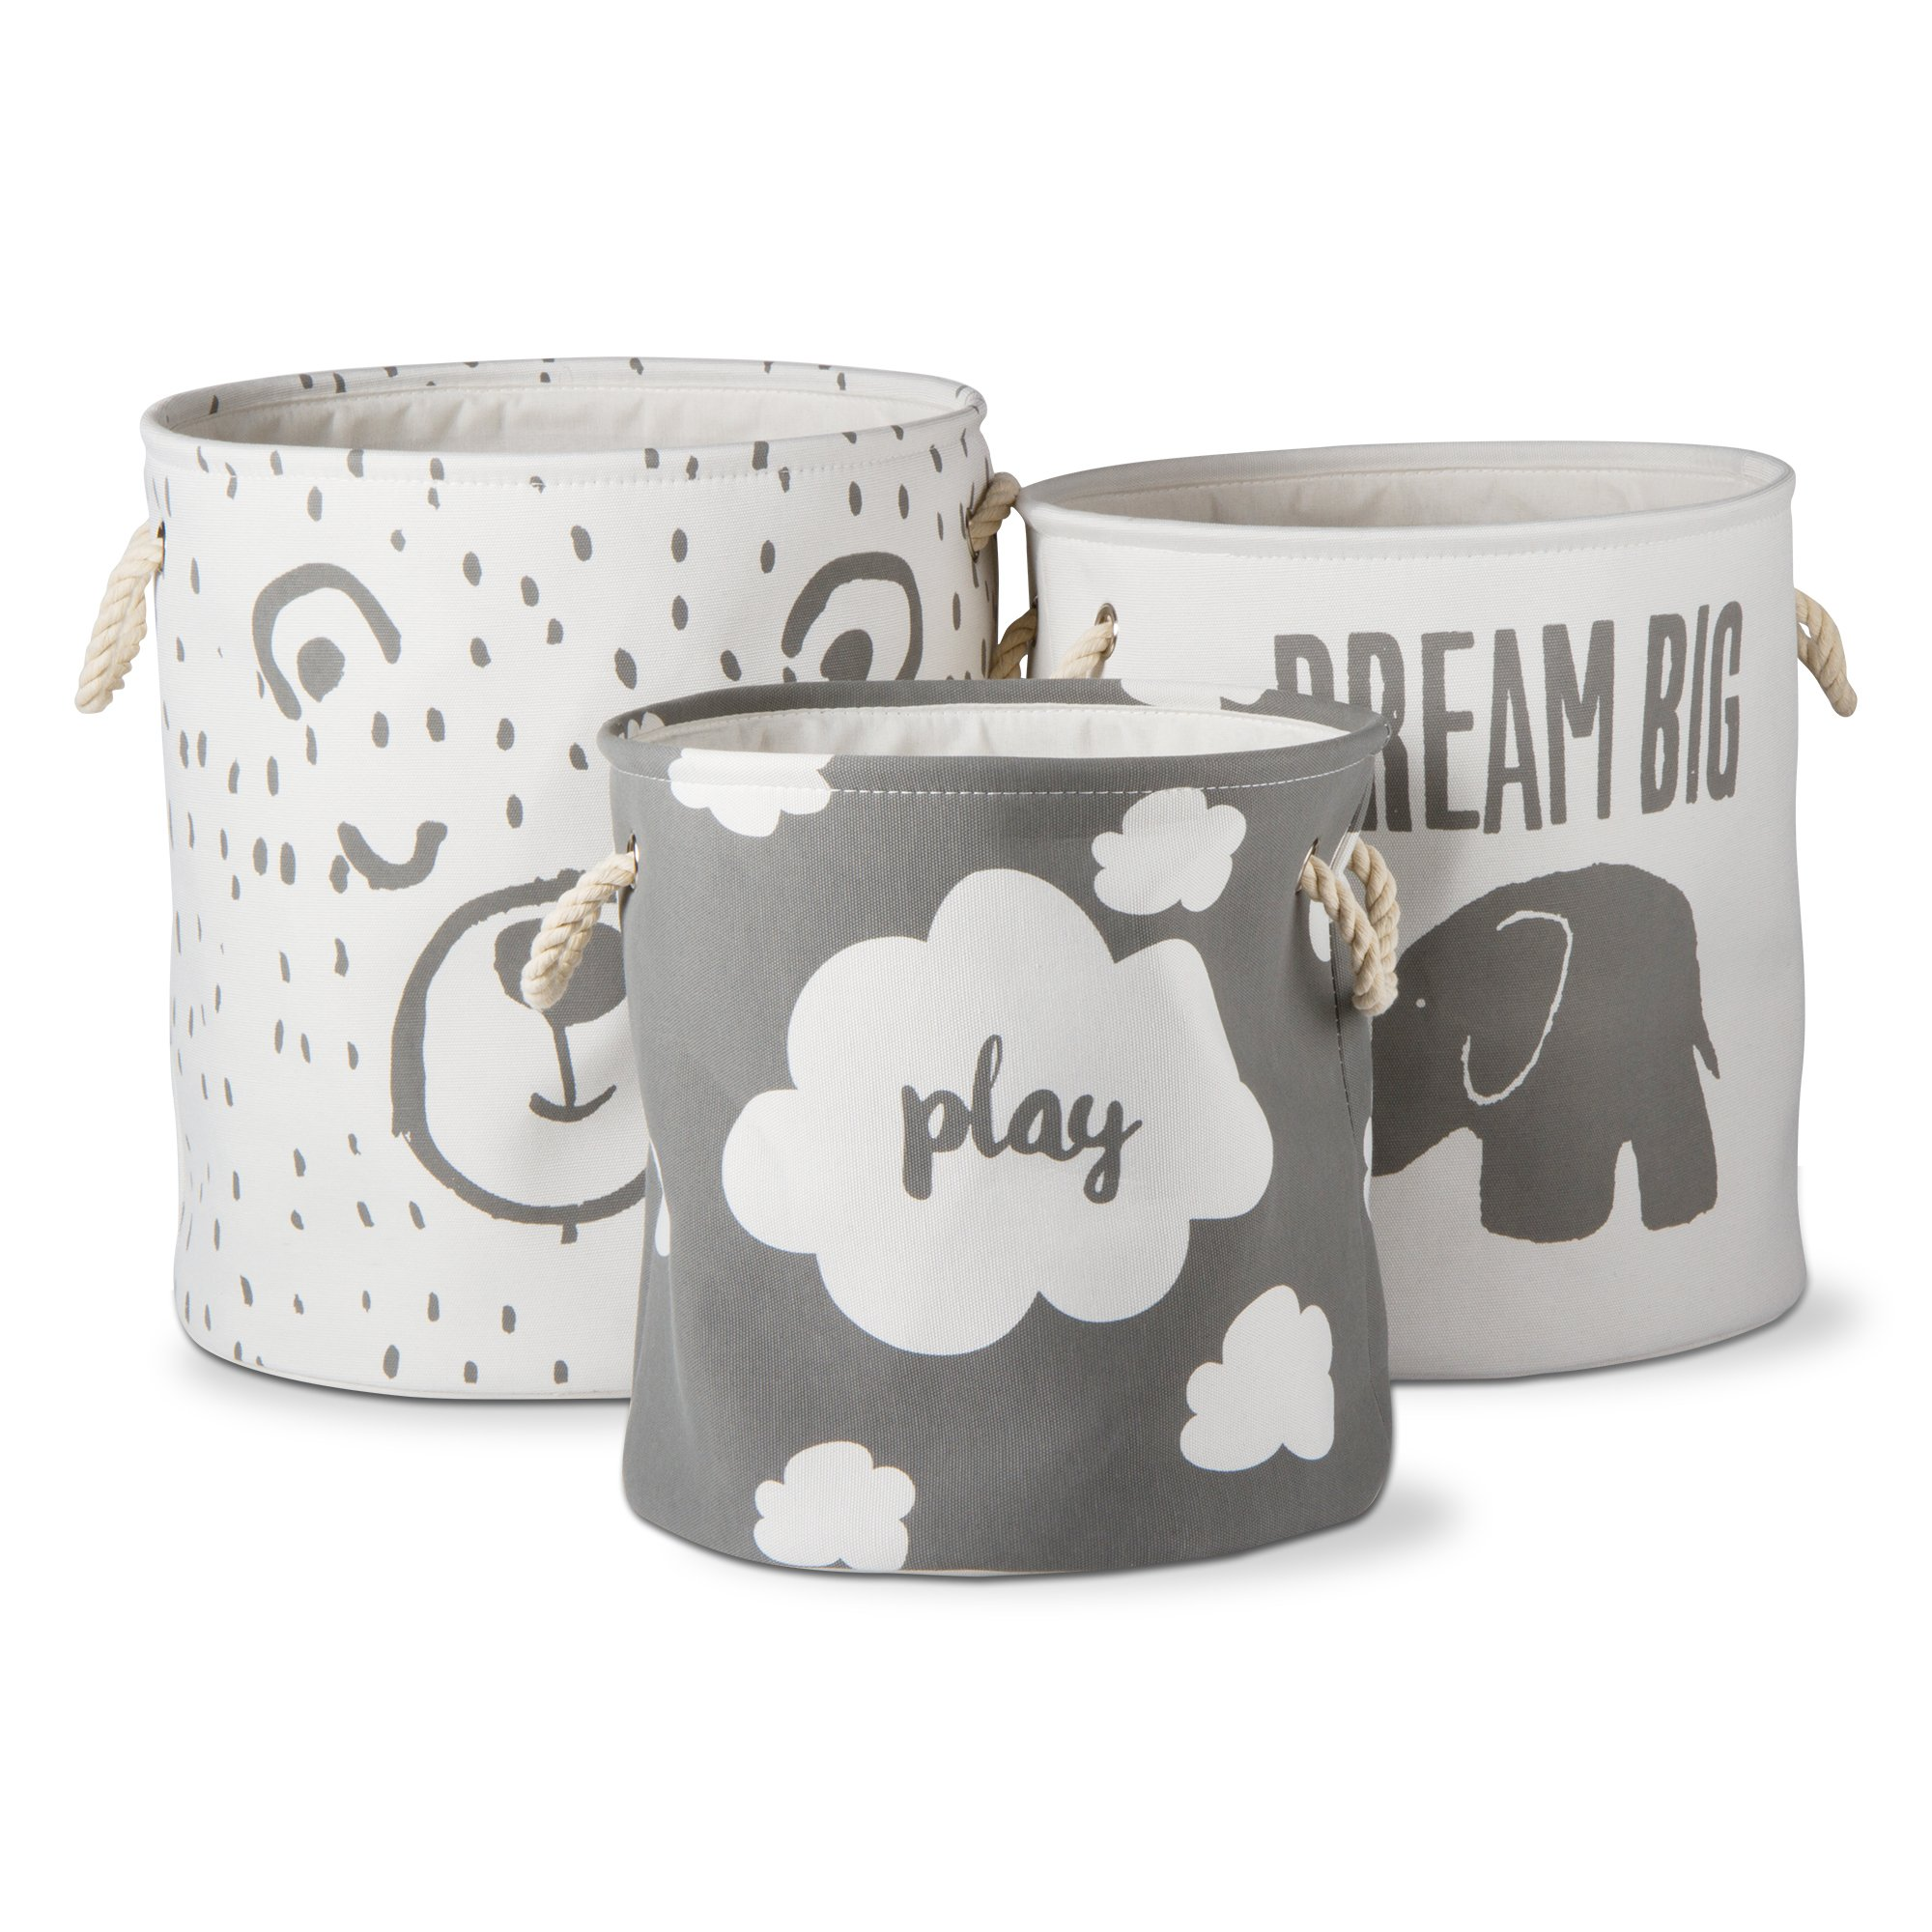 tag - Dream Big Basket, The Perfect Addition to Your Child's Room or Nursery, Gray & White (Set of 3)